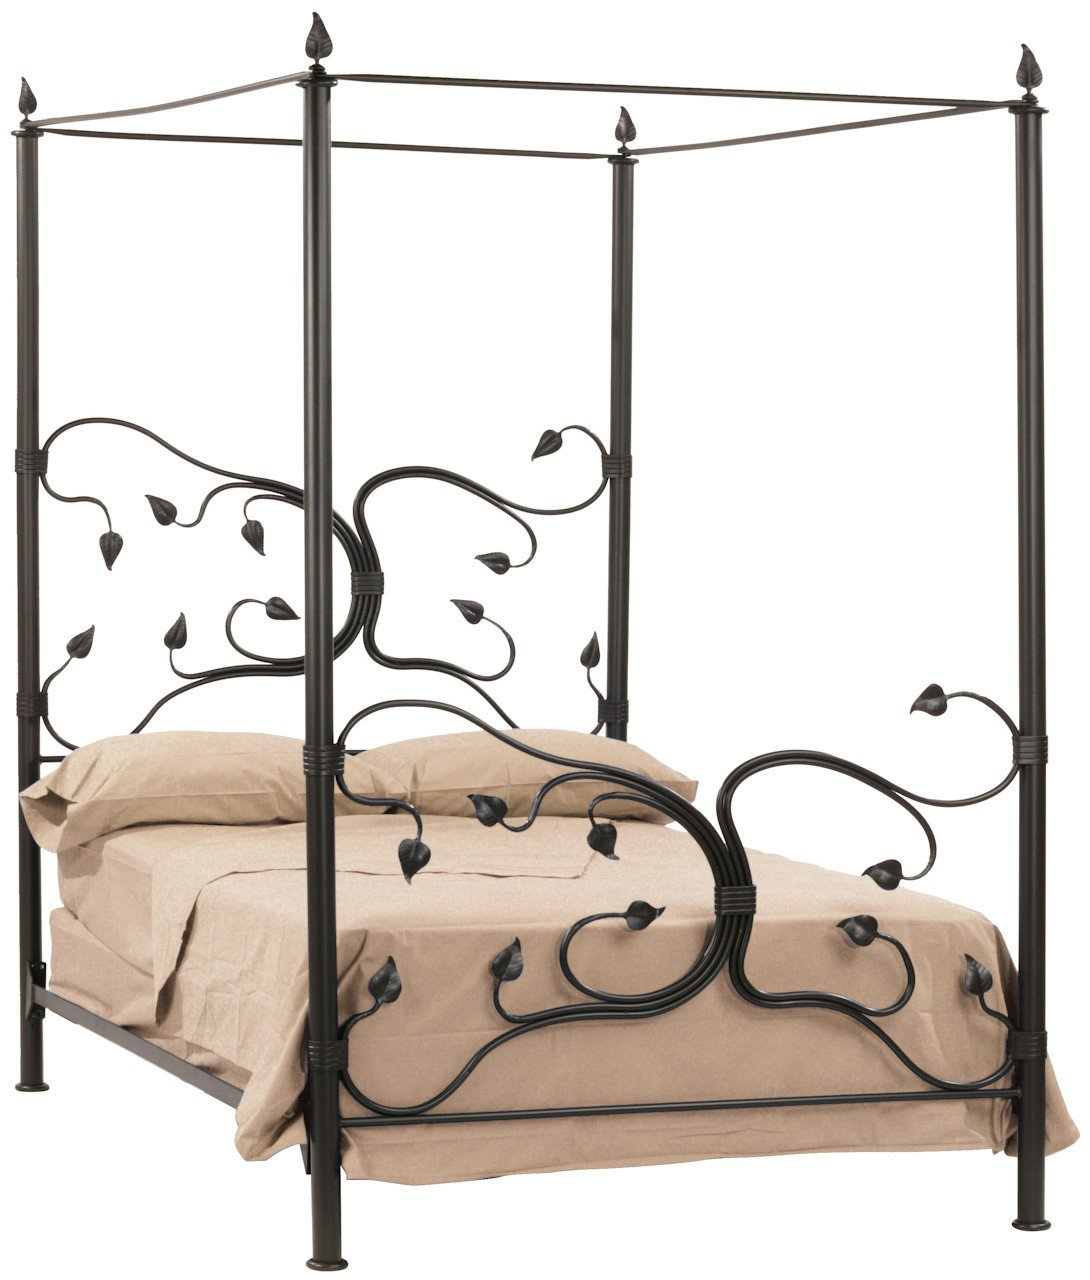 Isle Iron Canopy King Bed 1974 Product Photo